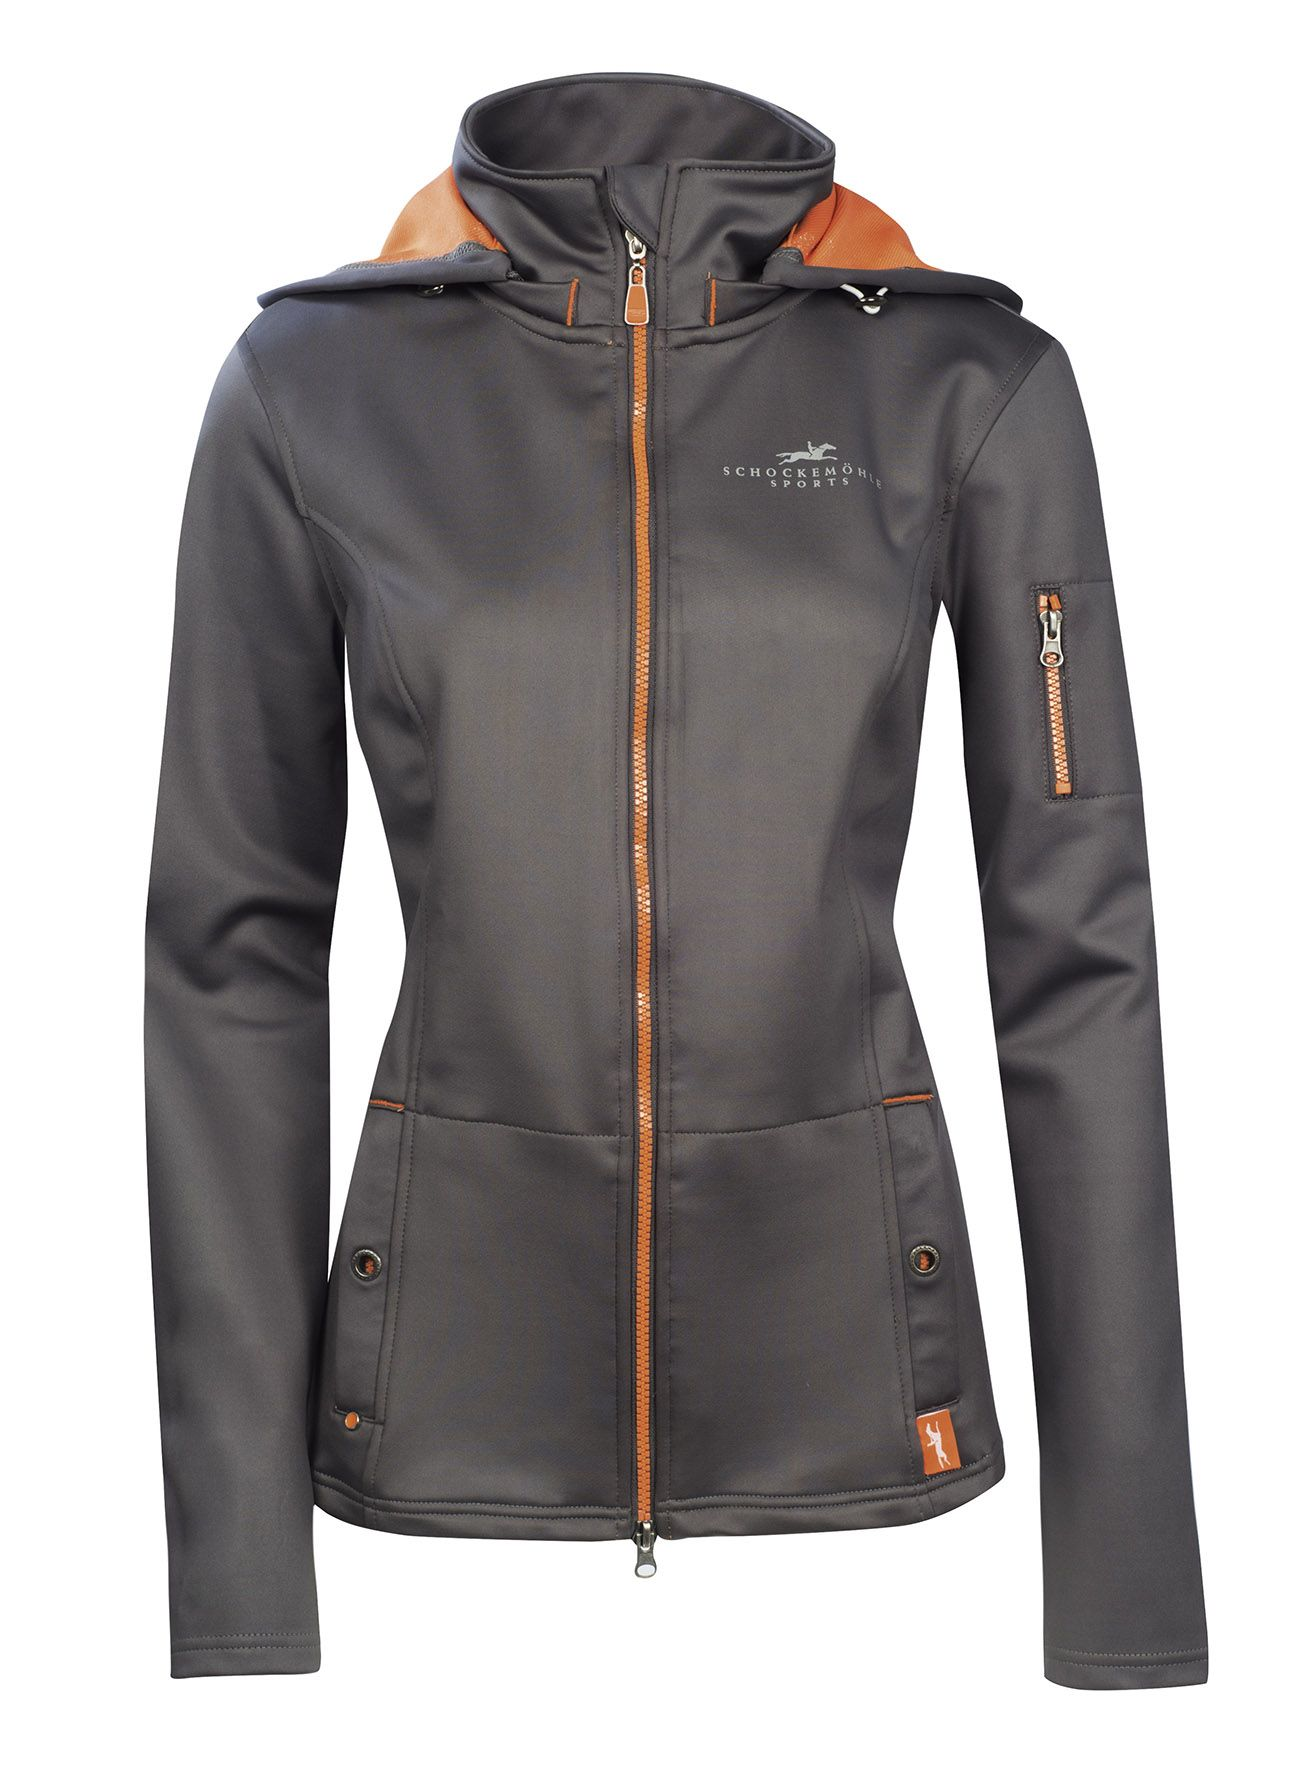 Wellensteyn Women's Softshell Jacket Sugarcube Black | eBay